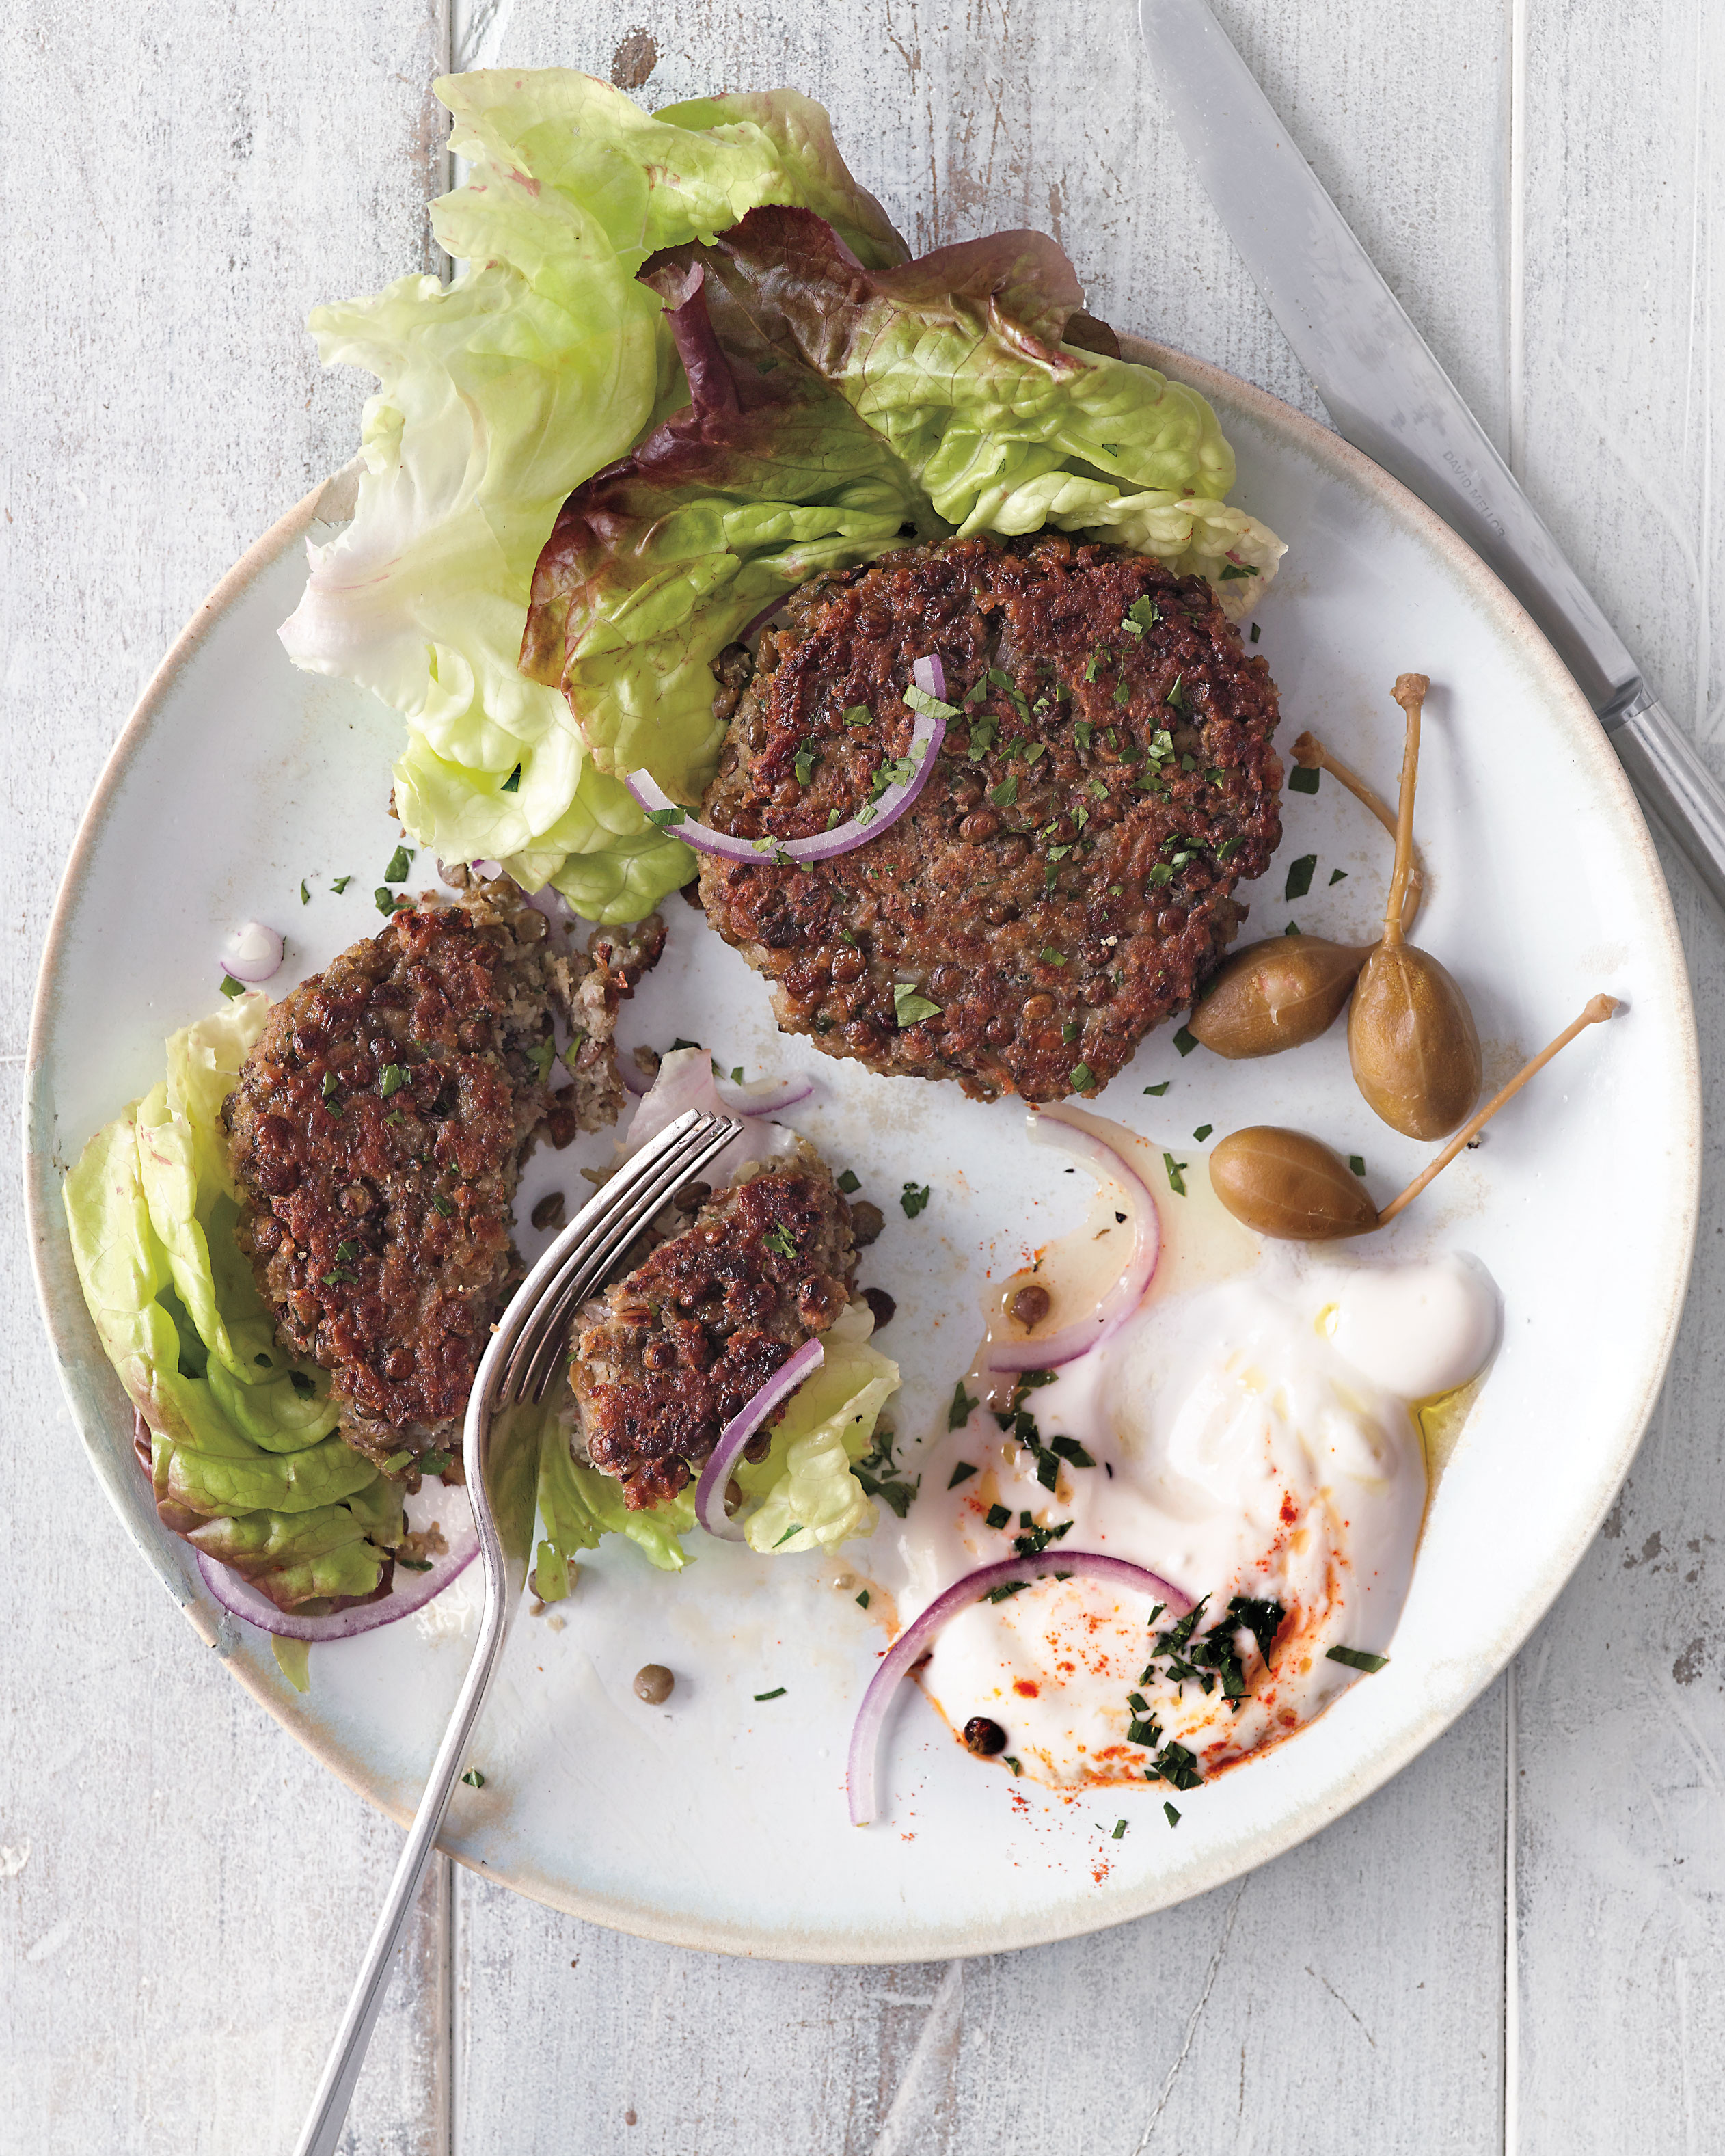 Lentil Patties with Lettuce and Yogurt